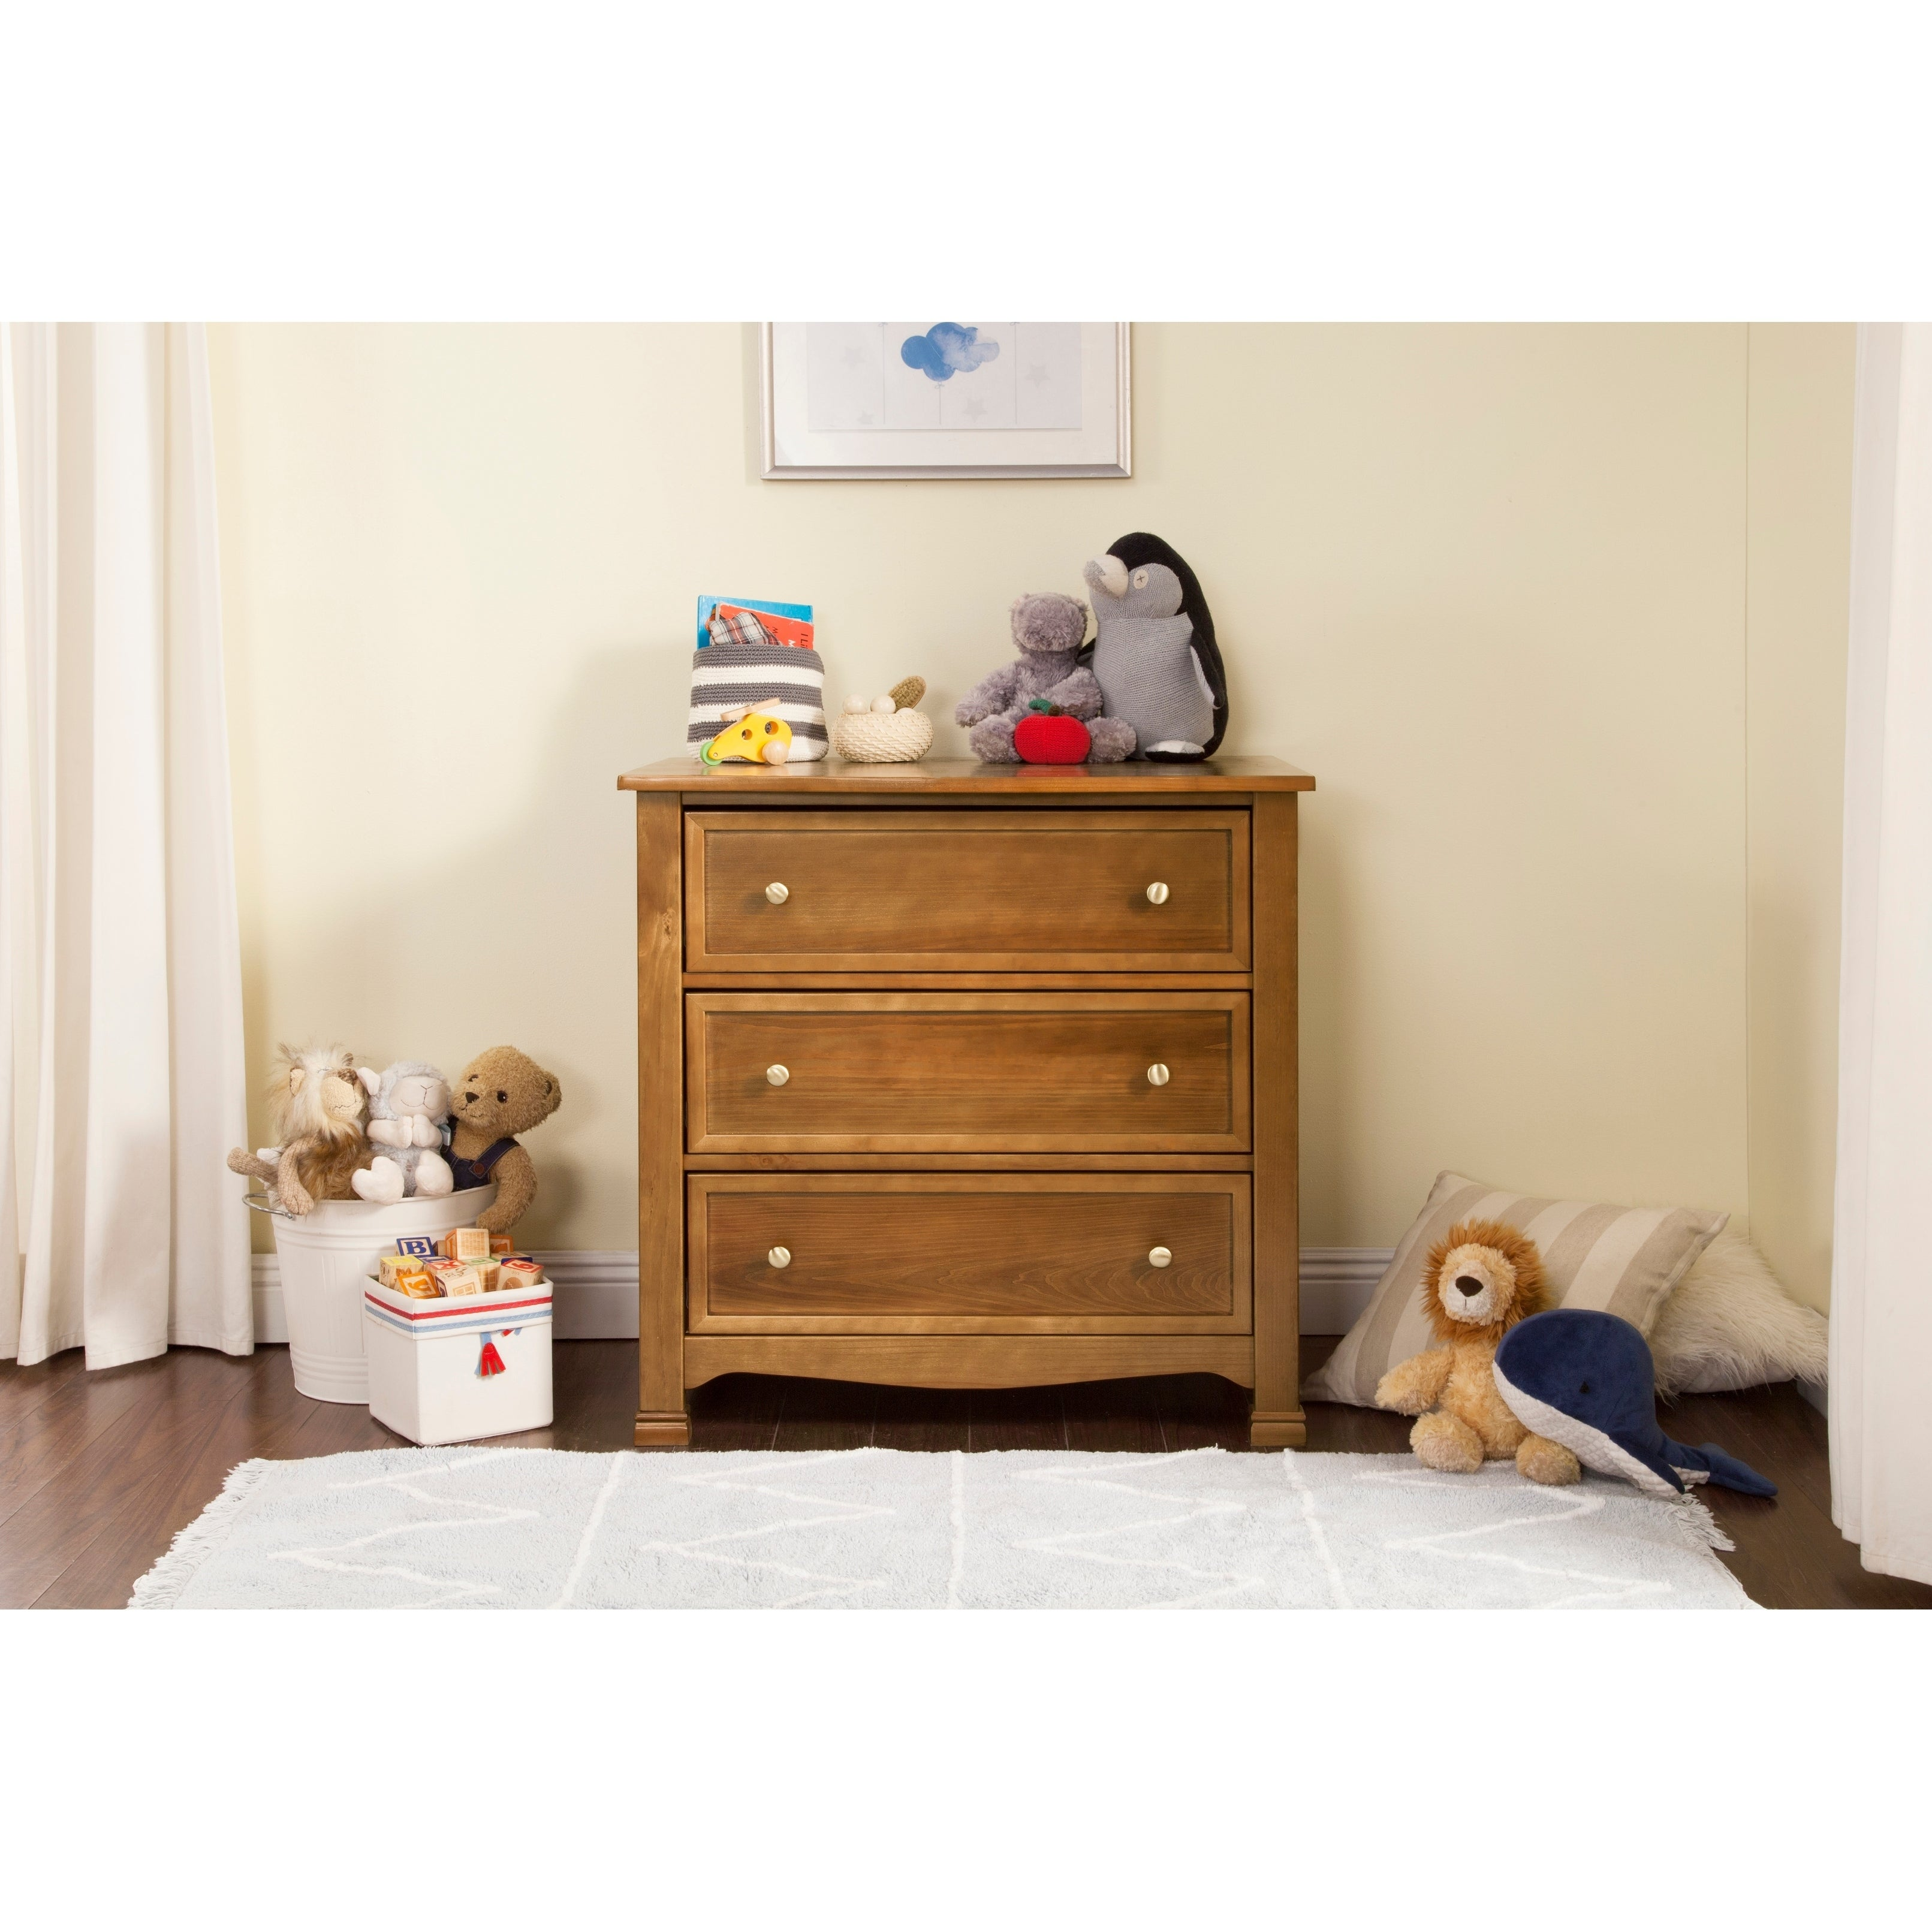 dresser free drawer product shipping garden kalani home traditional wood today overstock davinci